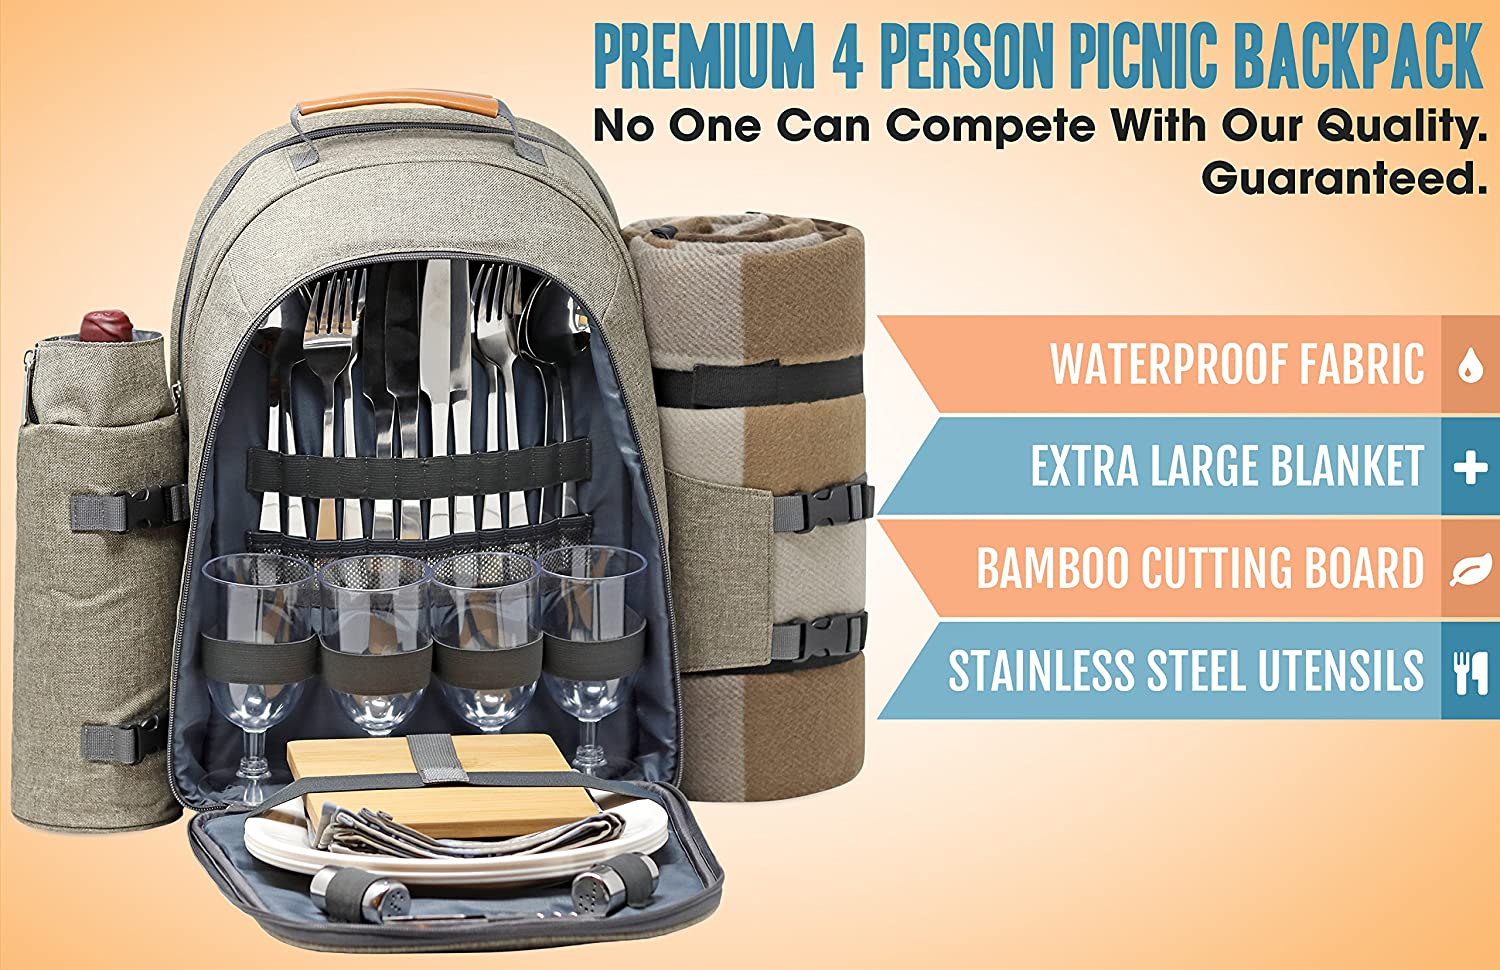 0cdf6707578 Amazon.com   One Earth Home 4 Person Picnic Backpack with Solid Stainless  Steel Utensils, Oversized Water Resistant Fleece Blanket, Cooler  Compartment, ...